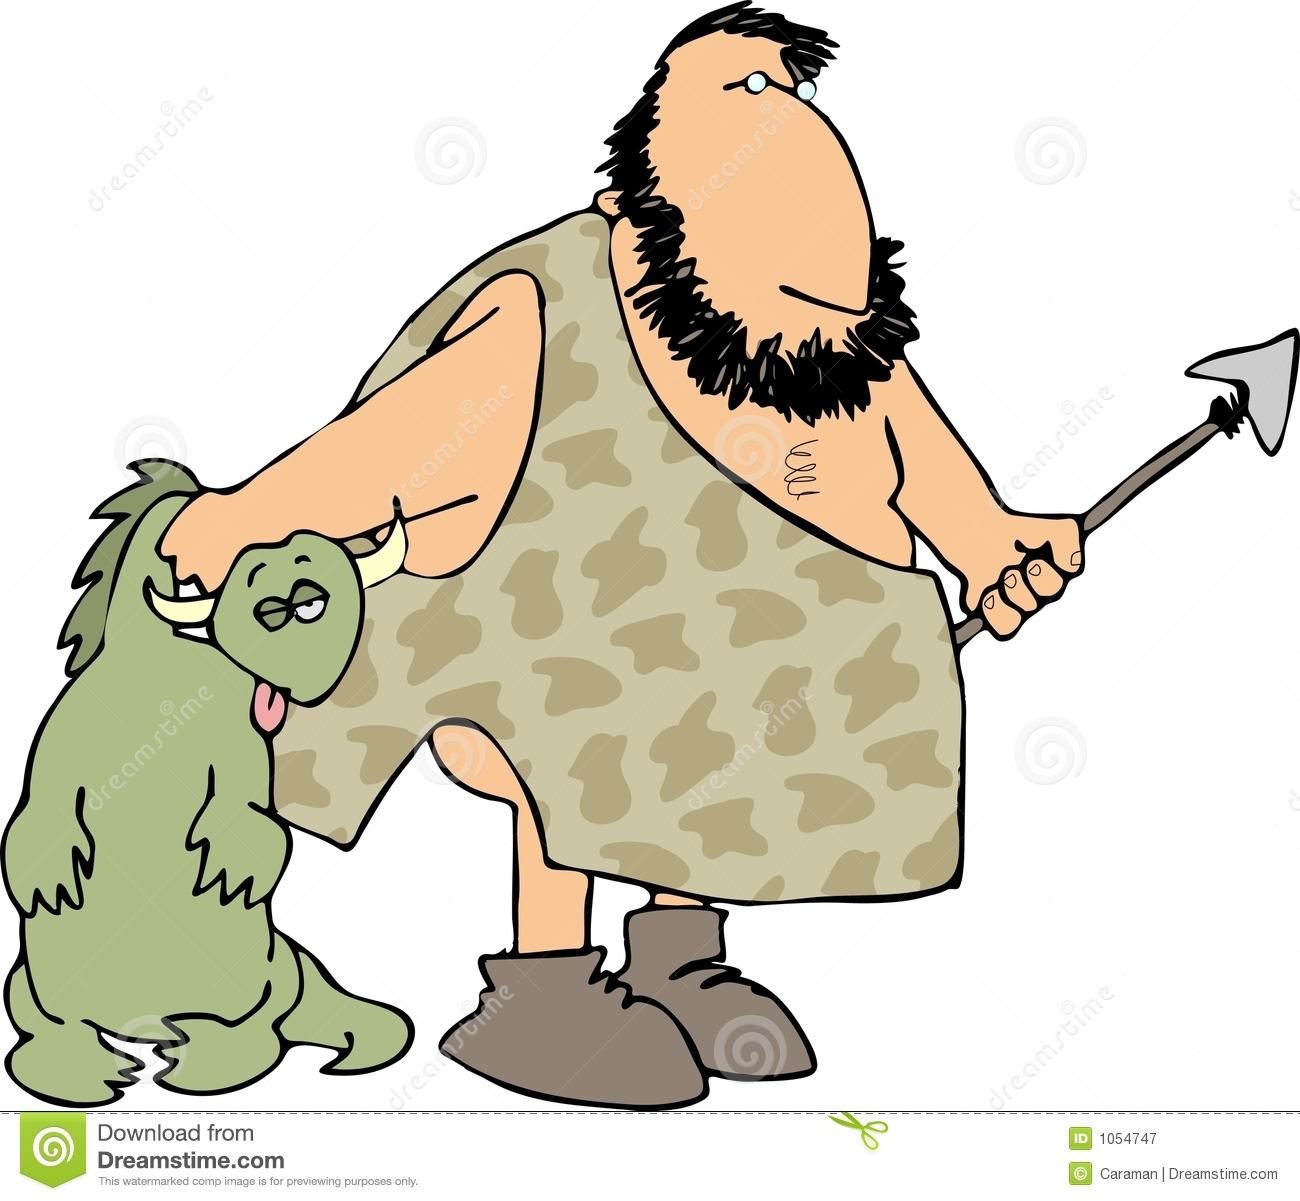 Caveman clipart hunting. Pencil and in color